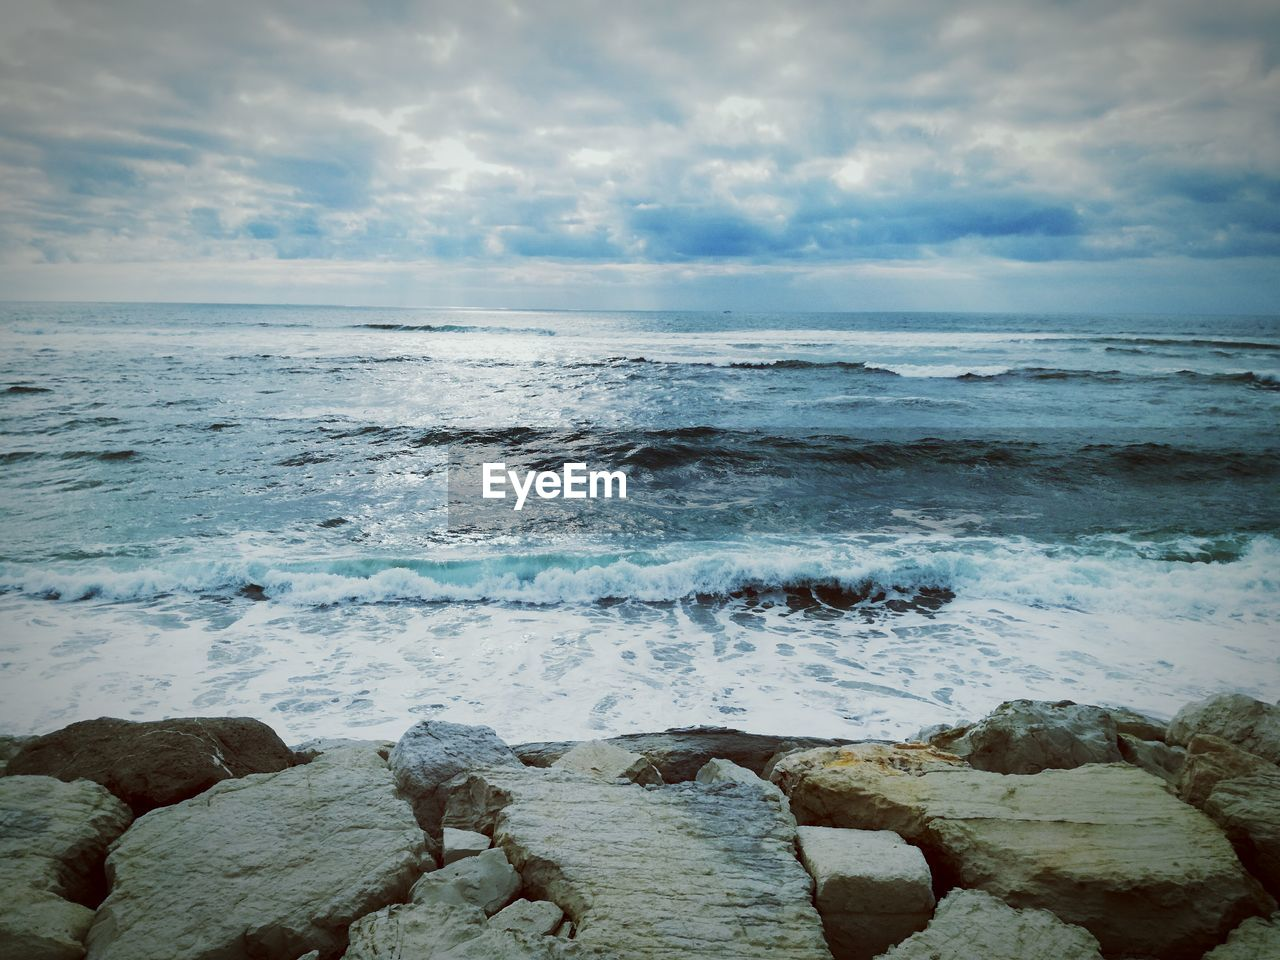 sea, water, horizon over water, nature, beauty in nature, sky, scenics, tranquil scene, beach, cloud - sky, tranquility, rock - object, outdoors, no people, idyllic, wave, day